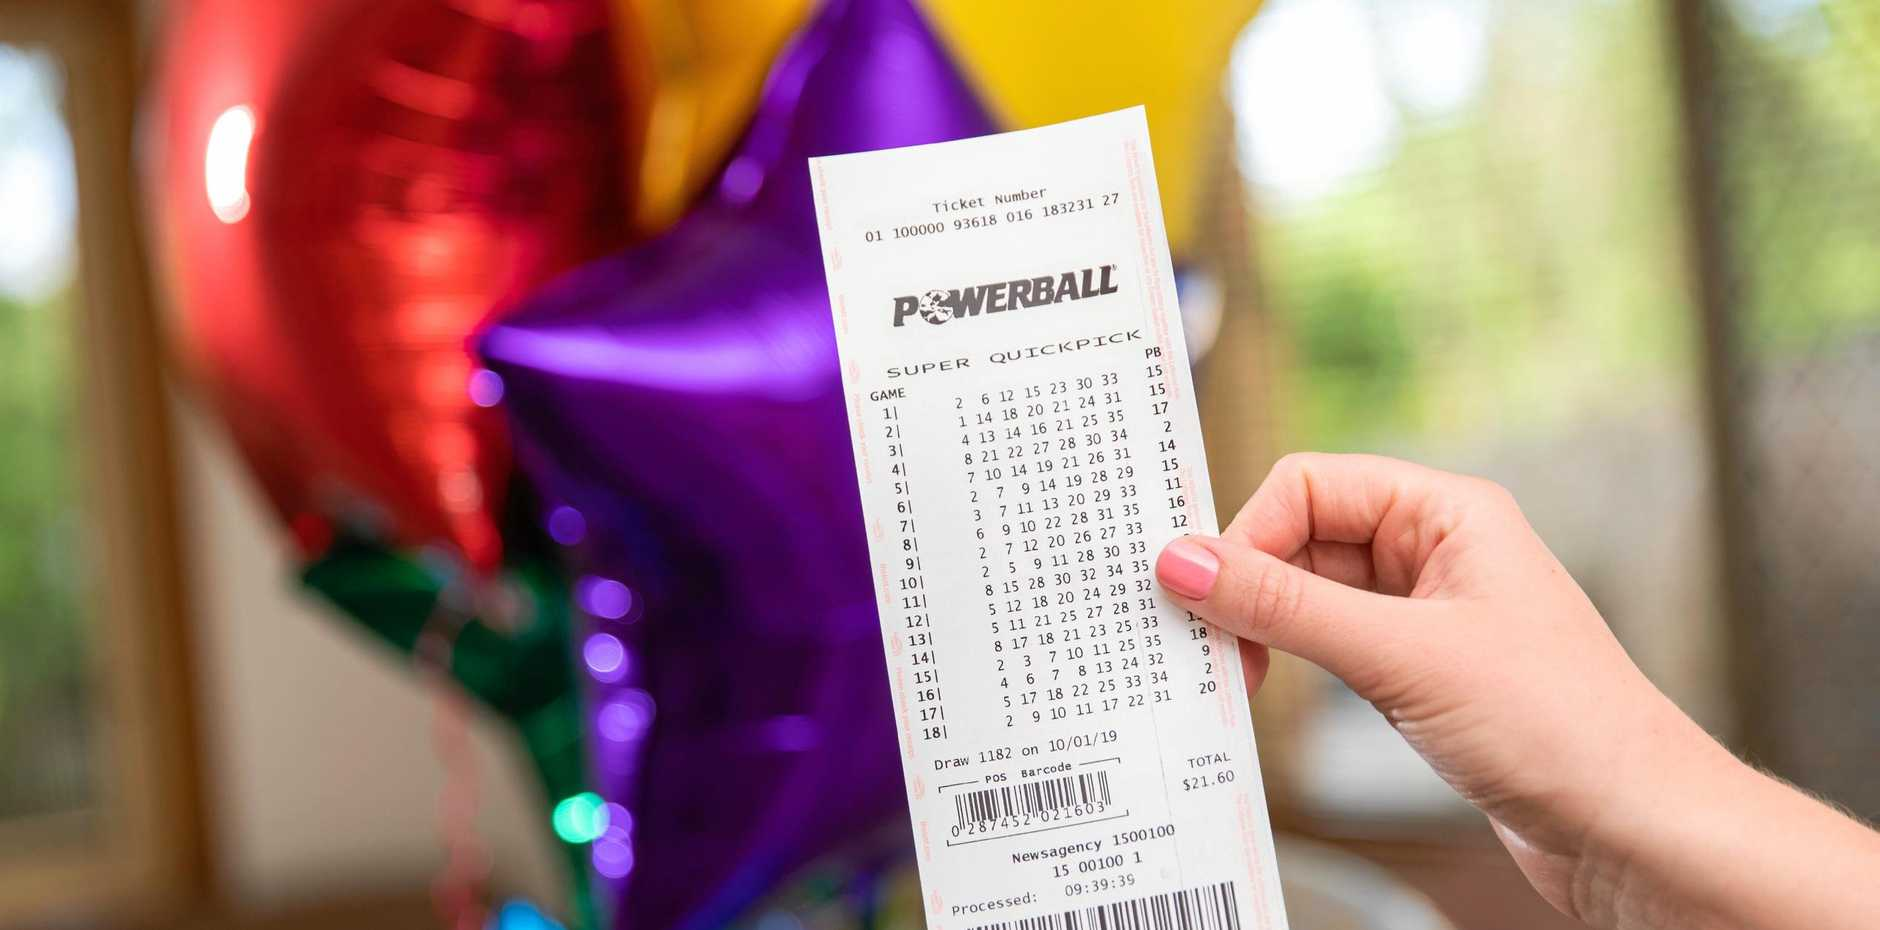 Are you Ipswich's newest millionaire? A third division winner from last night's Powerball is local and won $50 million.